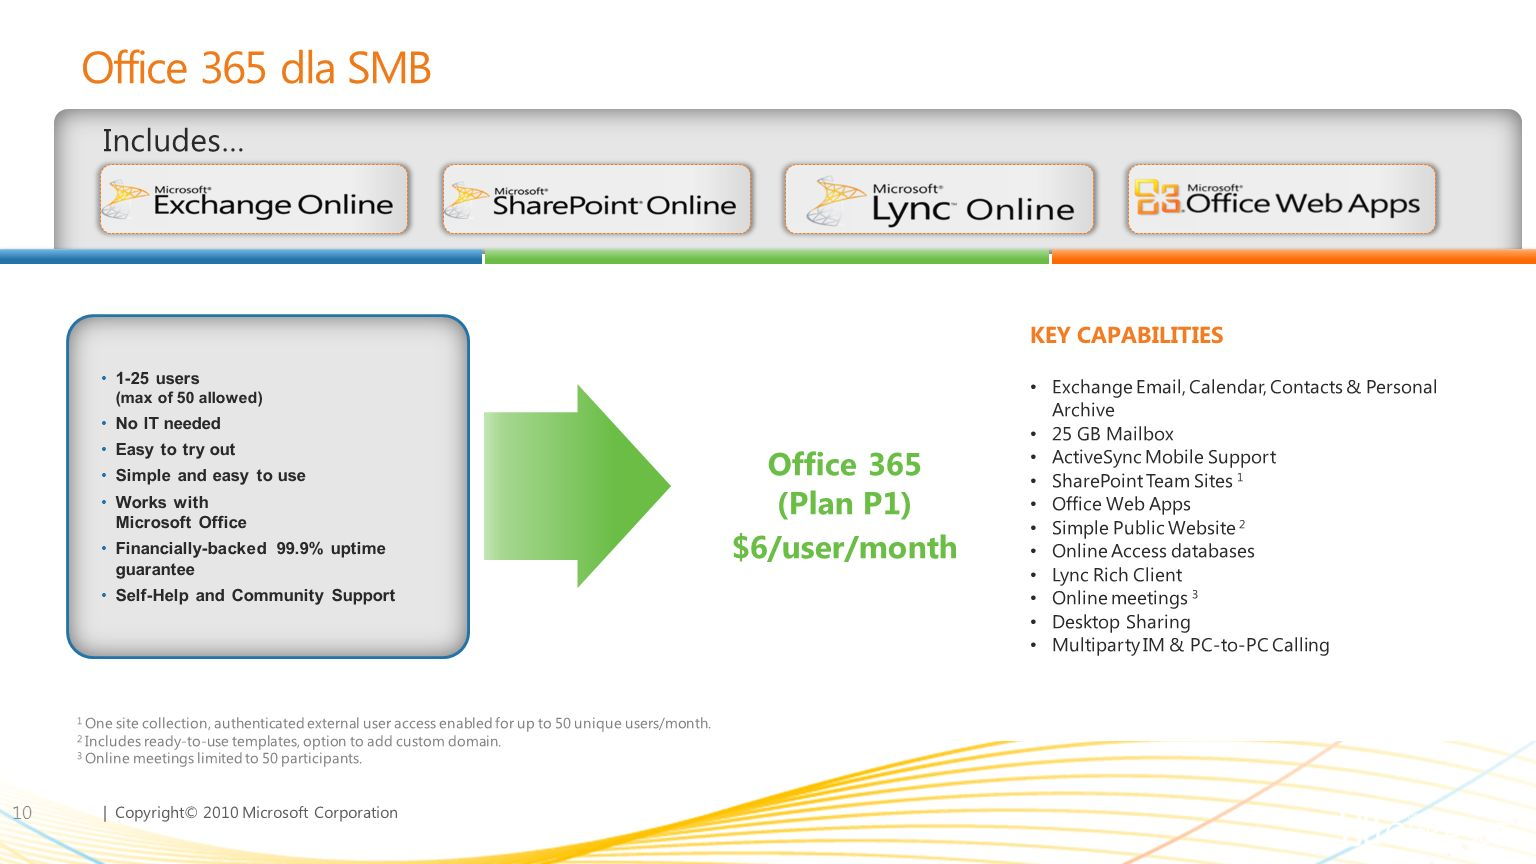 Office 365 dla SMB Includes… Office 365 (Plan P1) $6/user/month